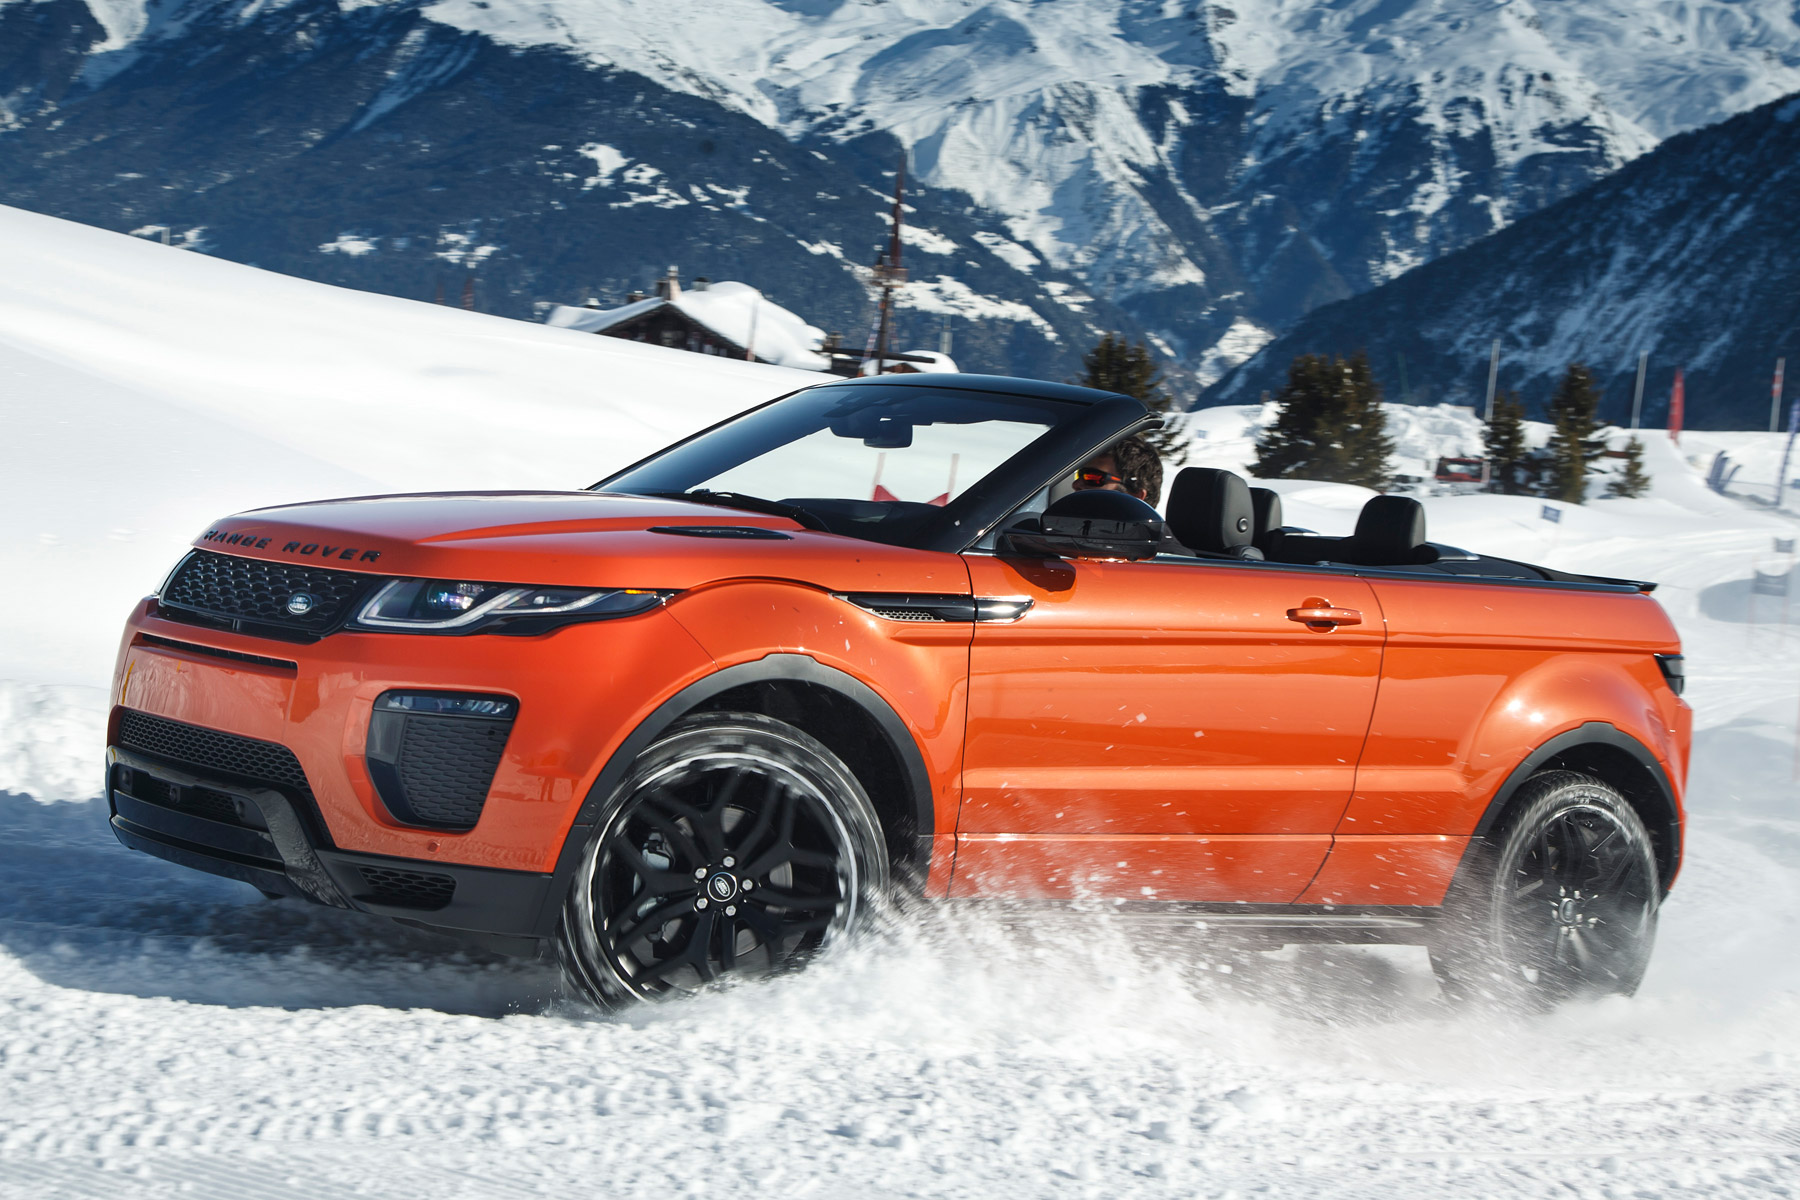 2016 range rover evoque convertible review first drive motoring research. Black Bedroom Furniture Sets. Home Design Ideas